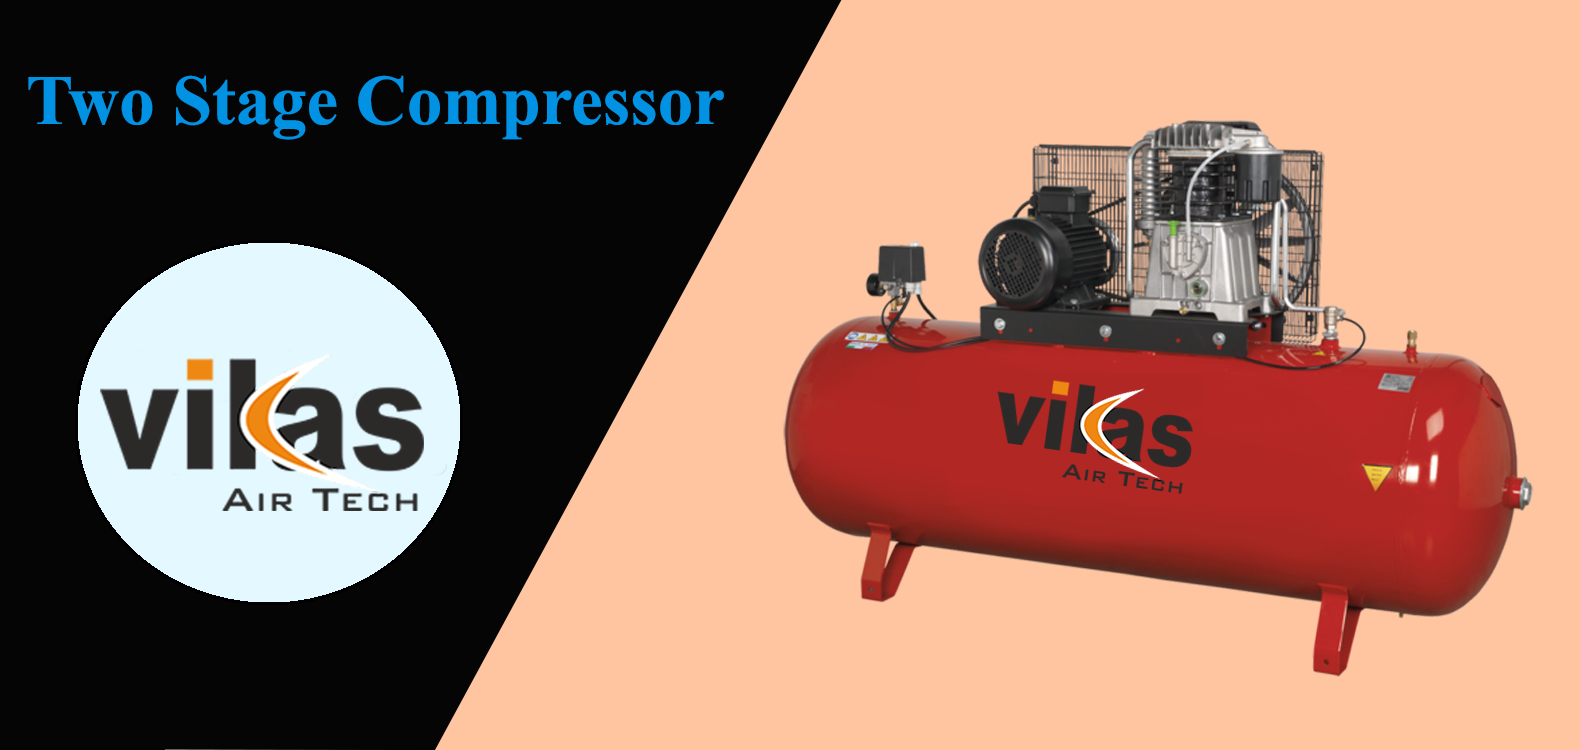 Two Stage Compressor, Air Compressor Spares in India, Air Compressor Spare in Ahmedabad, Air Compressor Spare in Gujarat